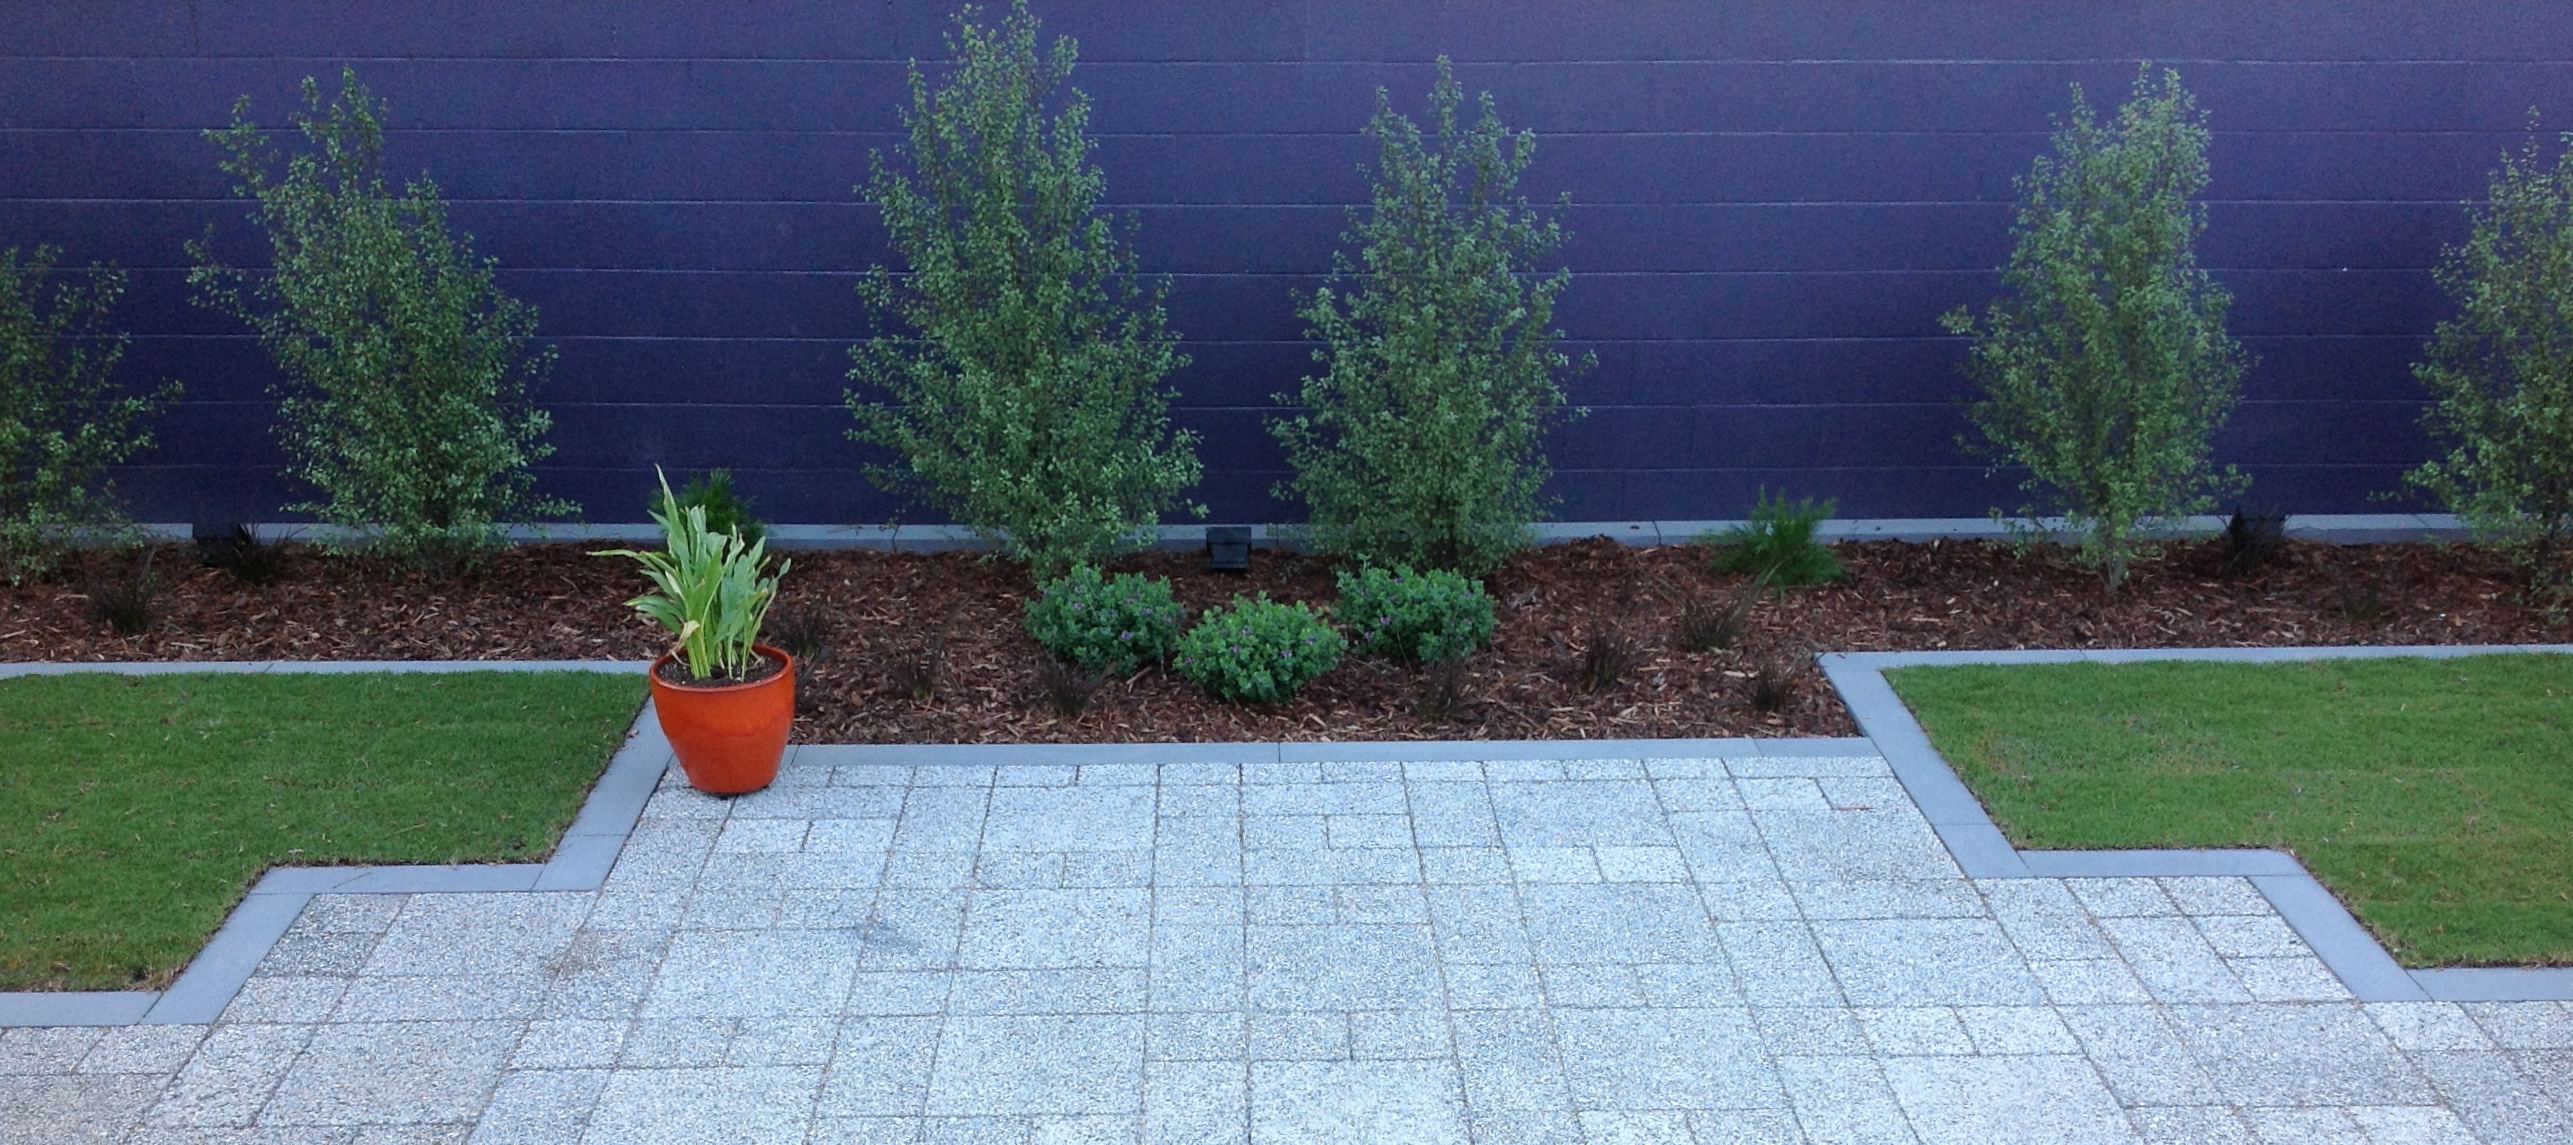 Pittosporum planted to provide privacy, perimeter wall painted plum